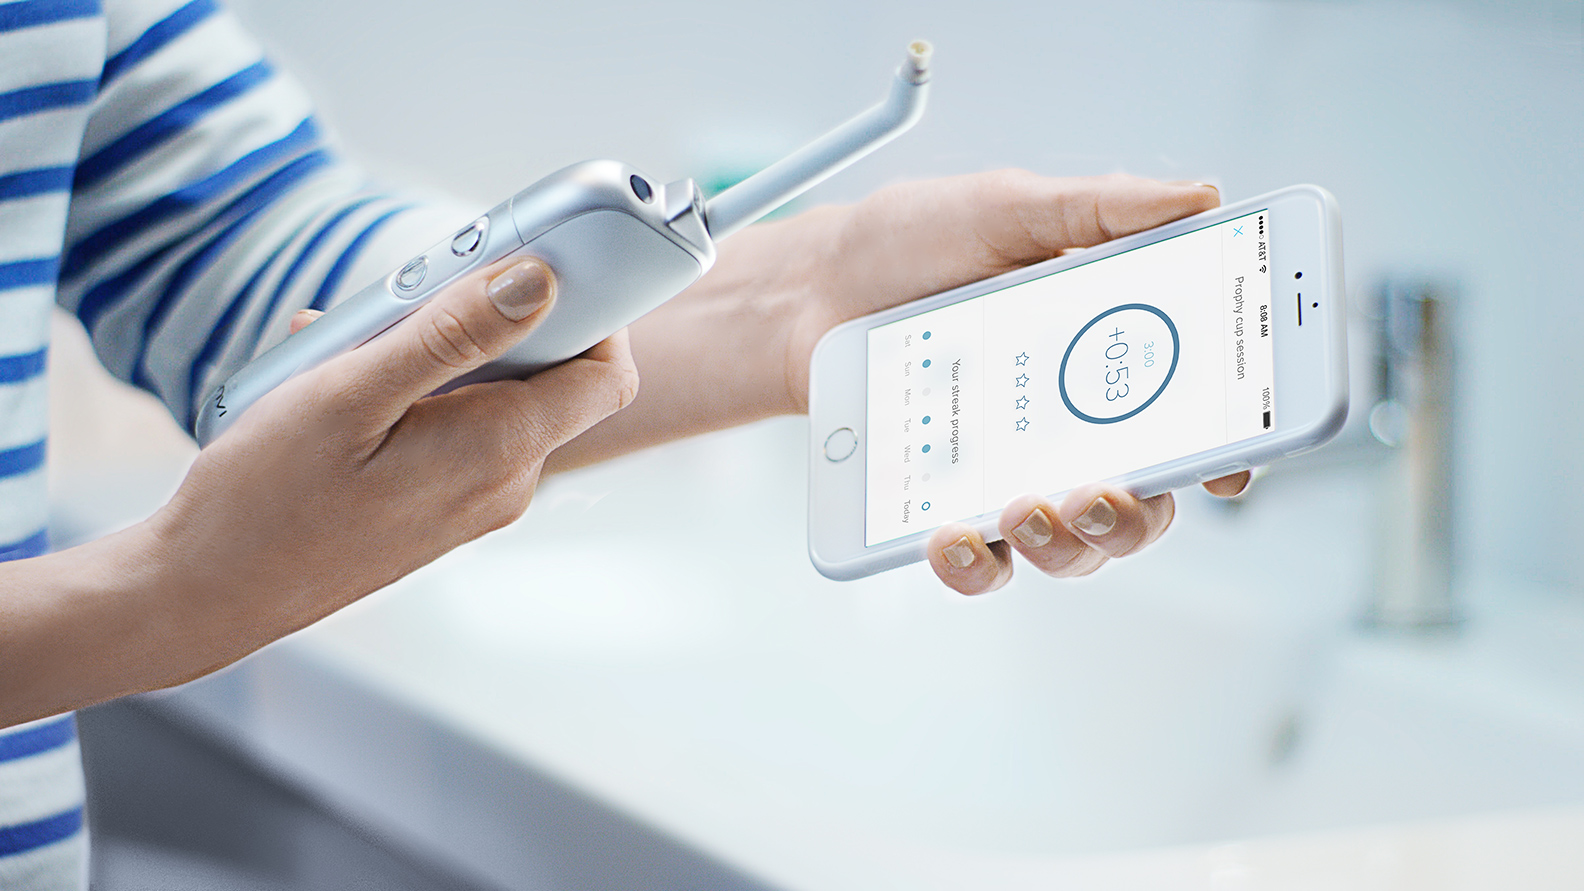 The Prophix smart toothbrush with camera